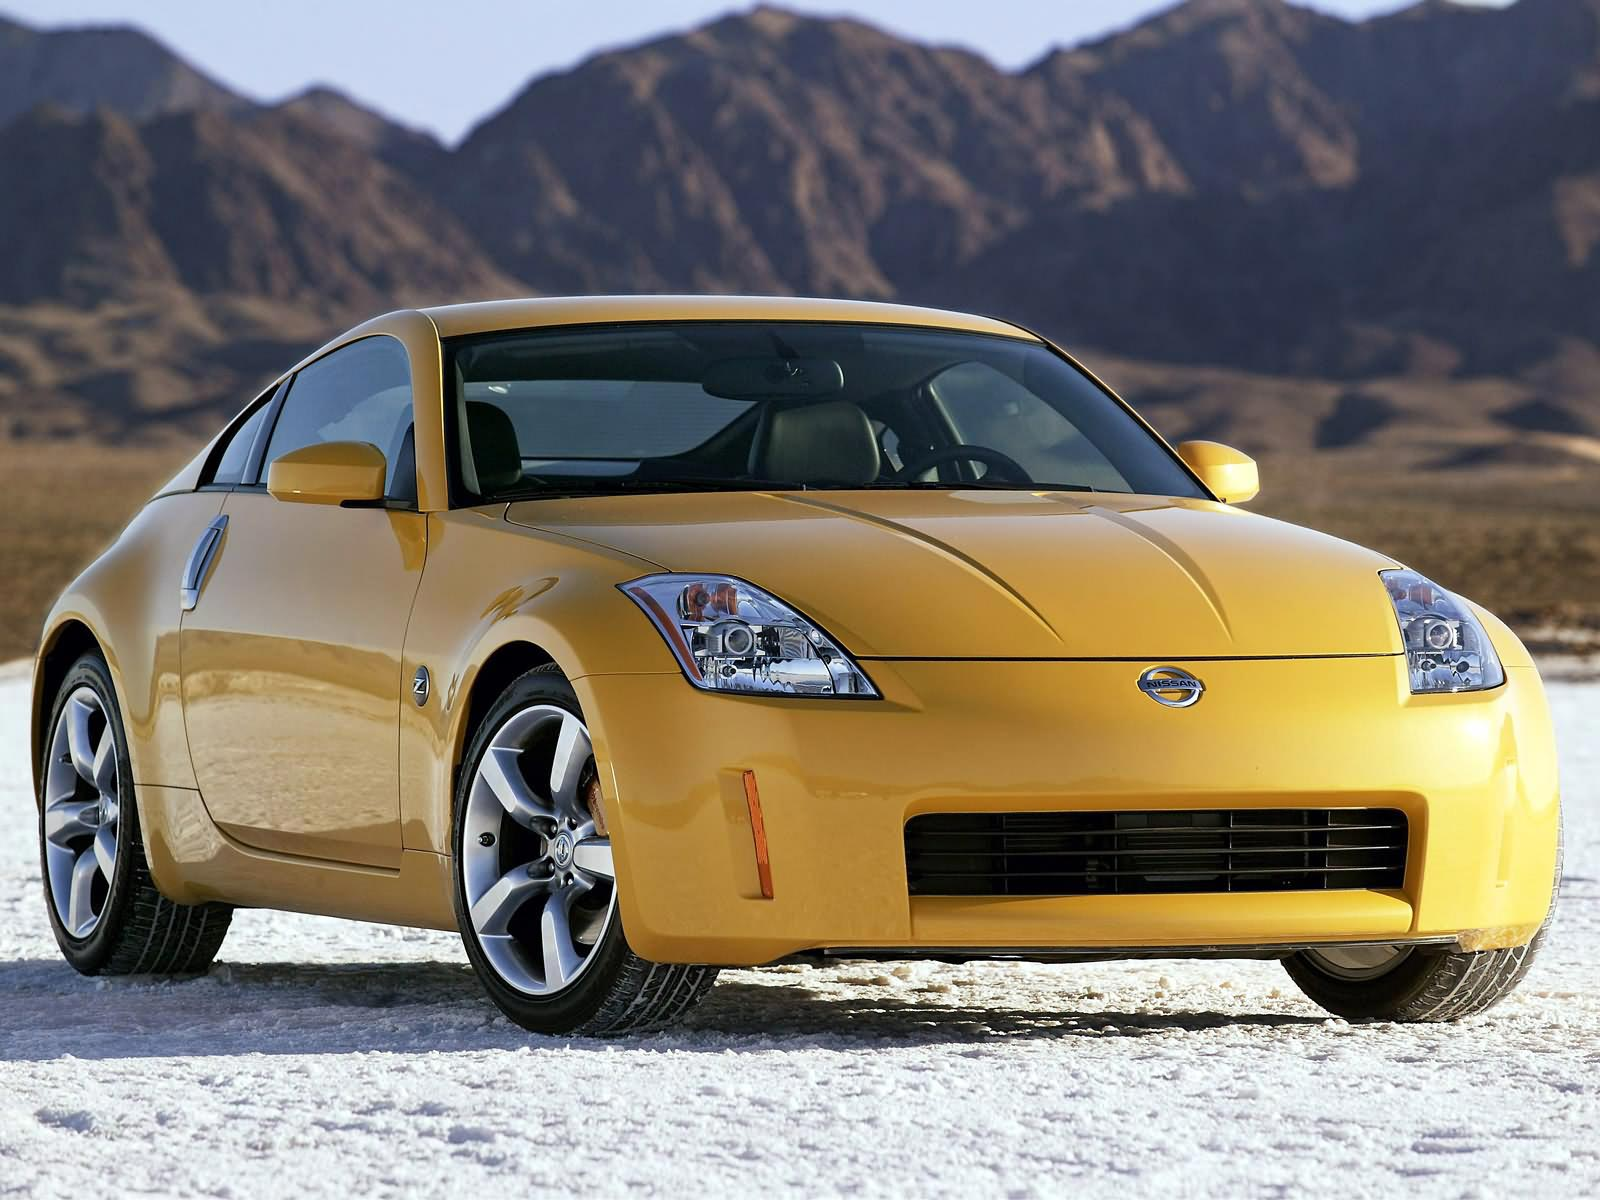 Luxury Car Nissan 350z Two Seat Sports That Was Manufactured By From 2002 To 2009